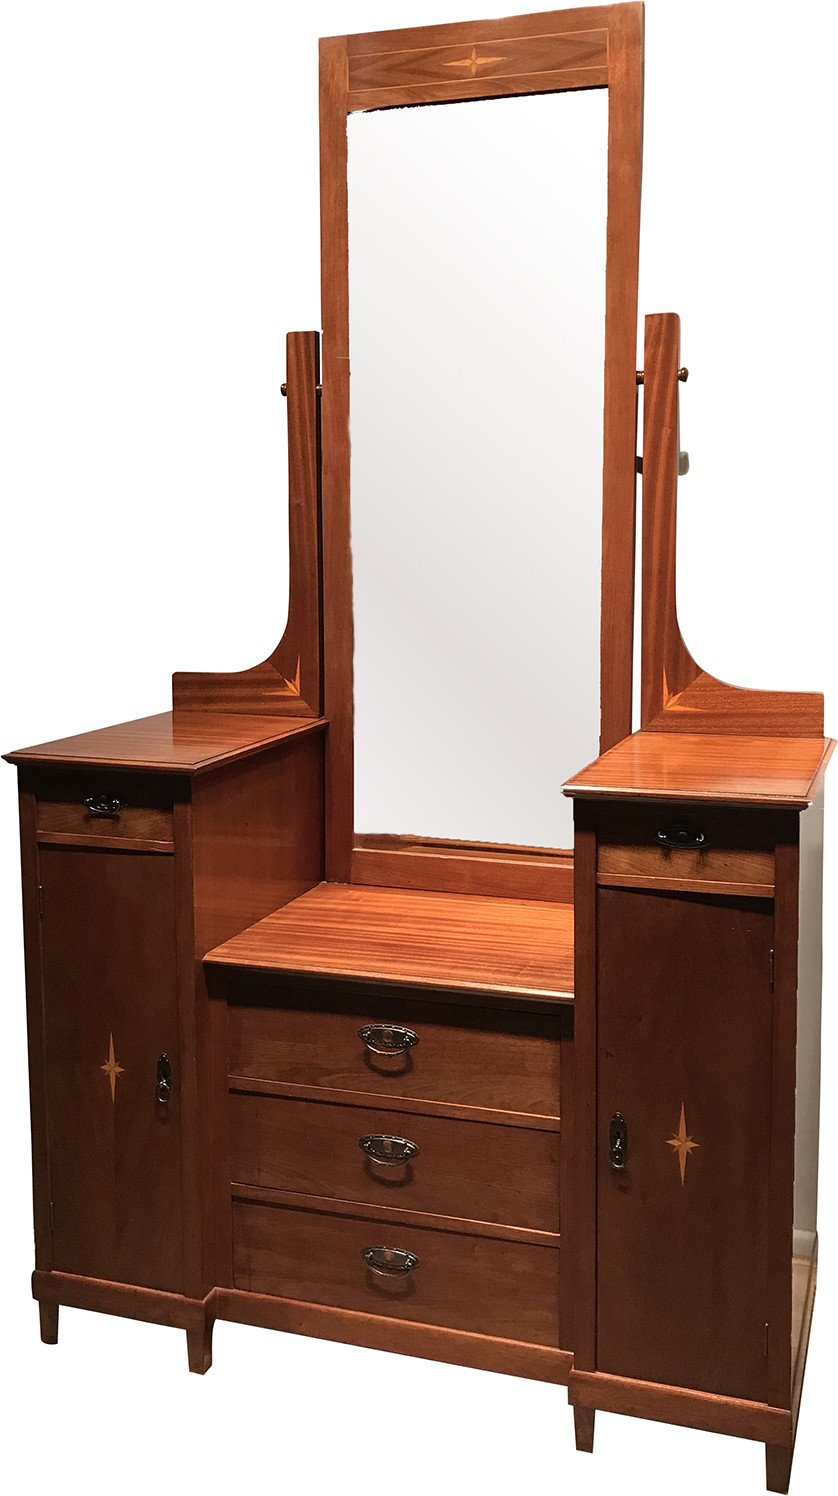 Dressing Table with Intarsia, early 20th C. - 454883 - photo